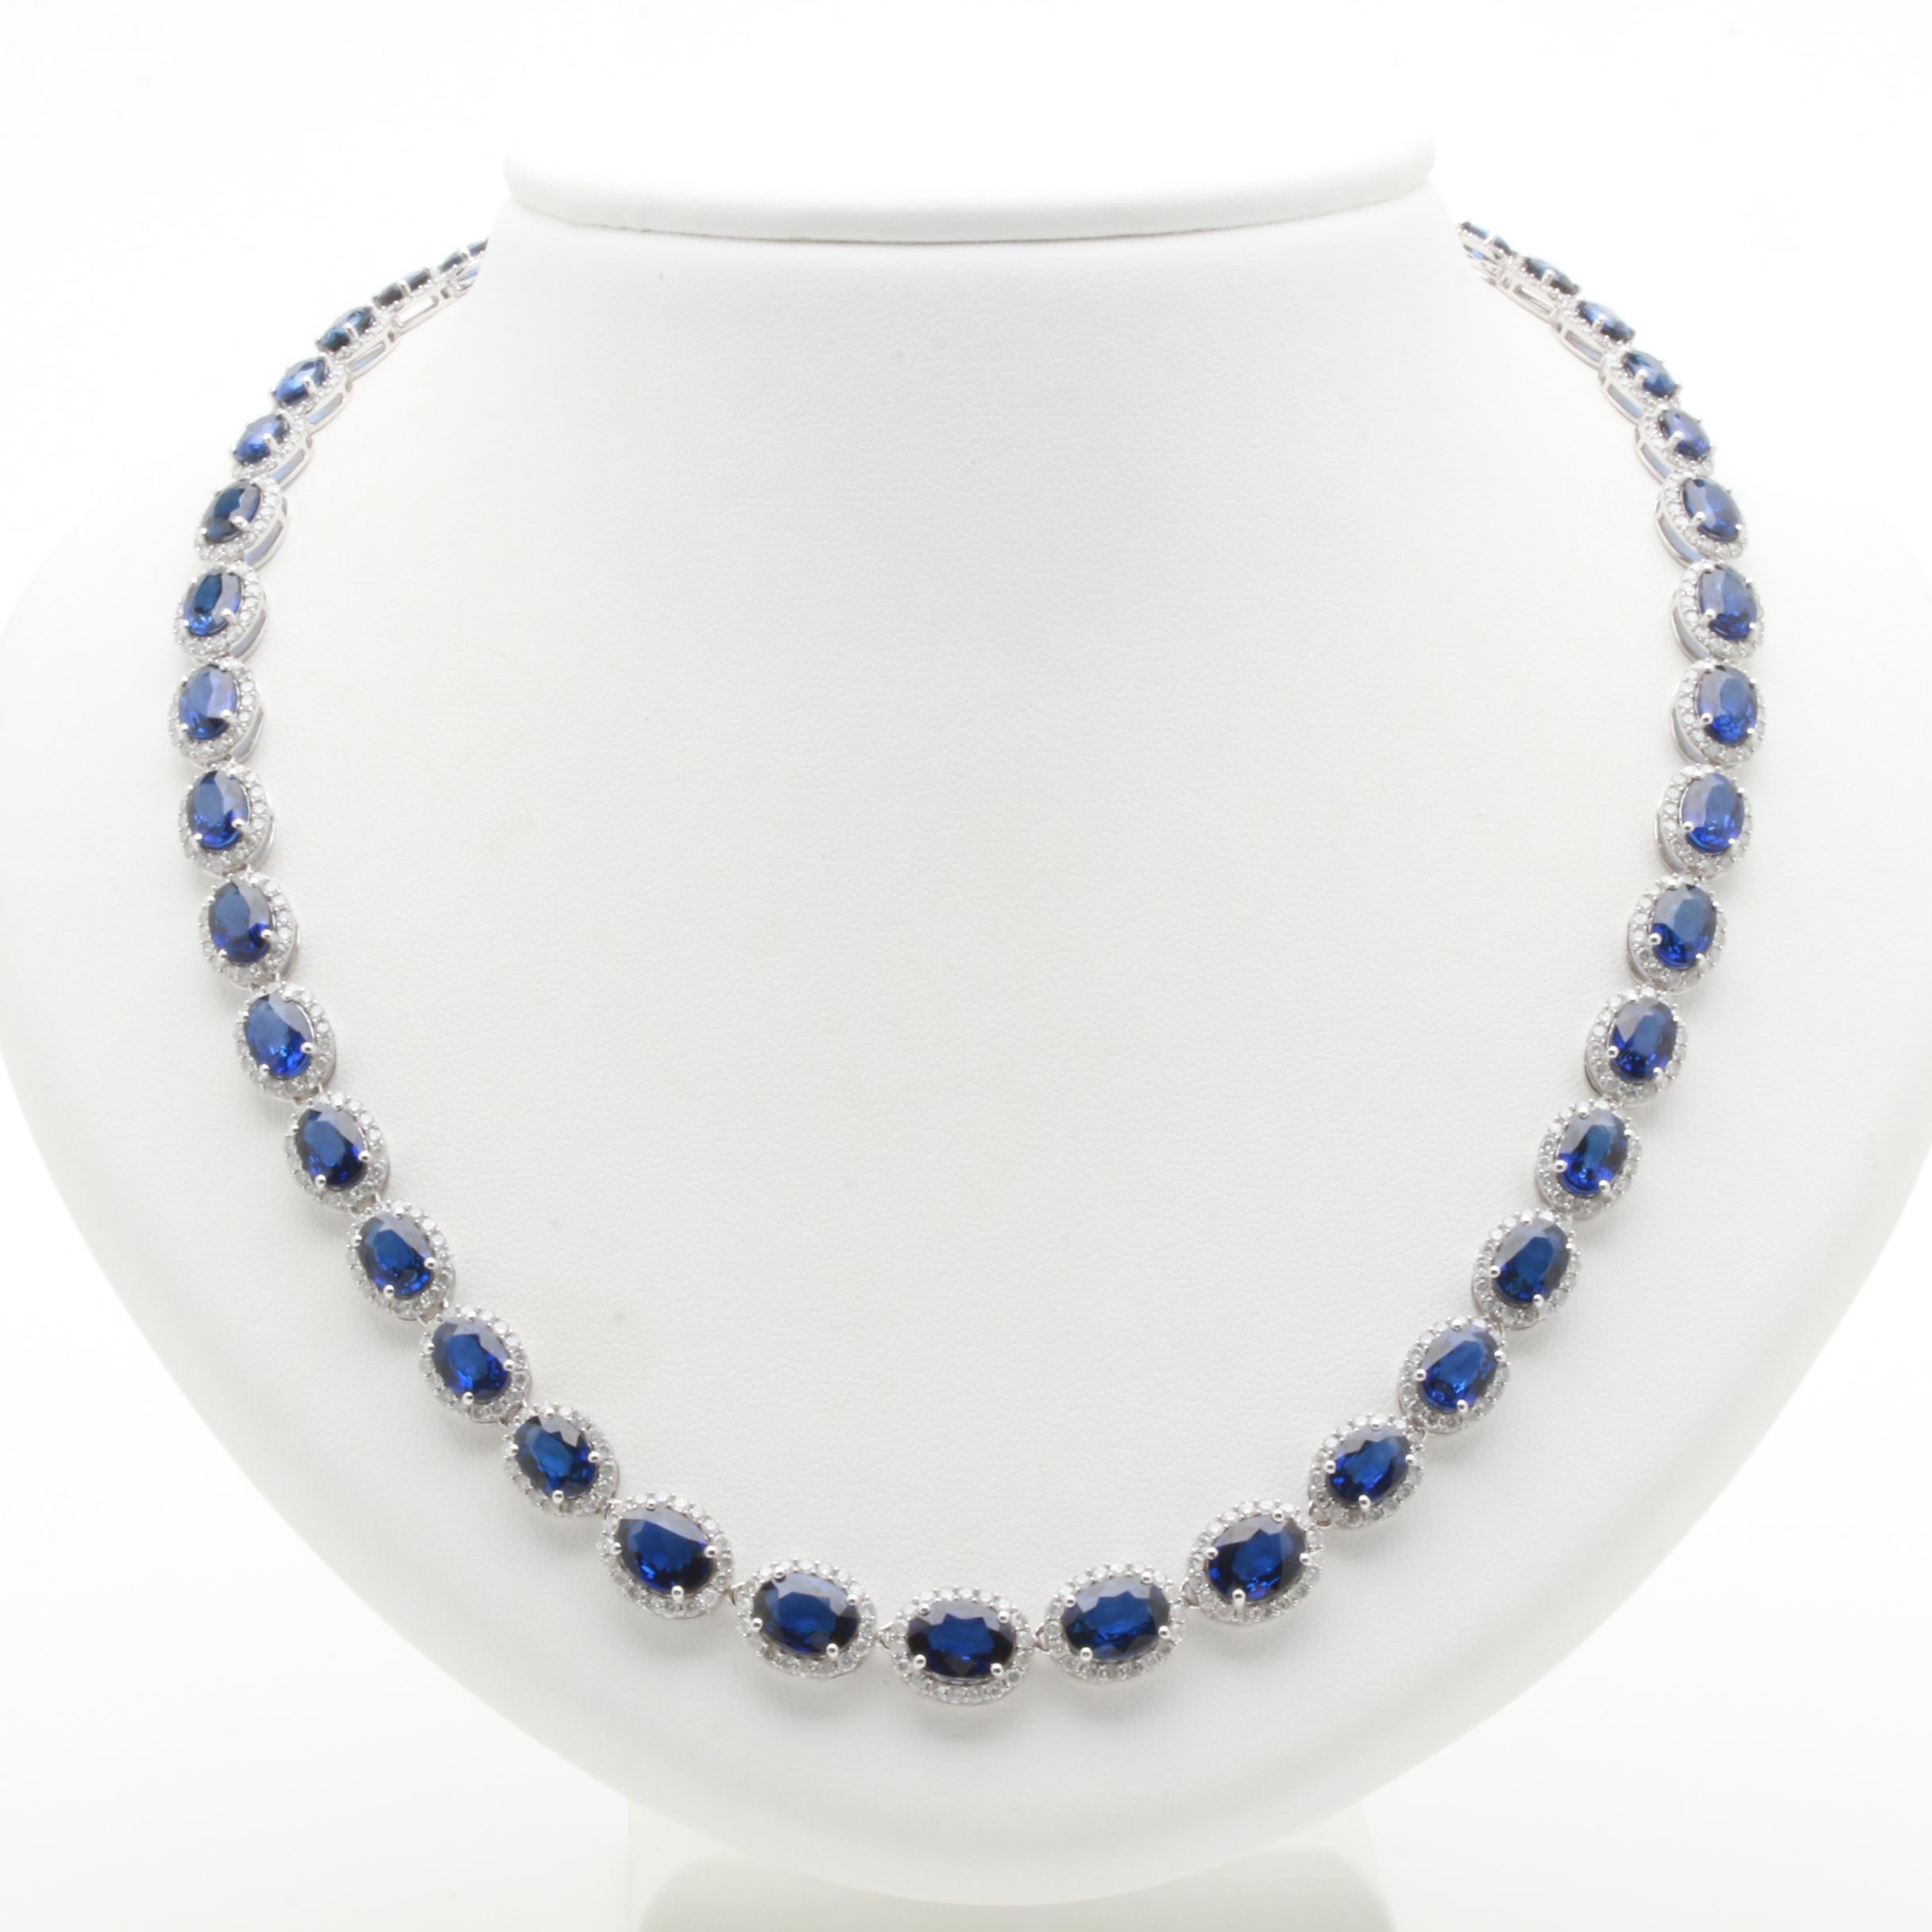 14K White Gold Sapphire and 6.90 CTW Diamond Link Necklace